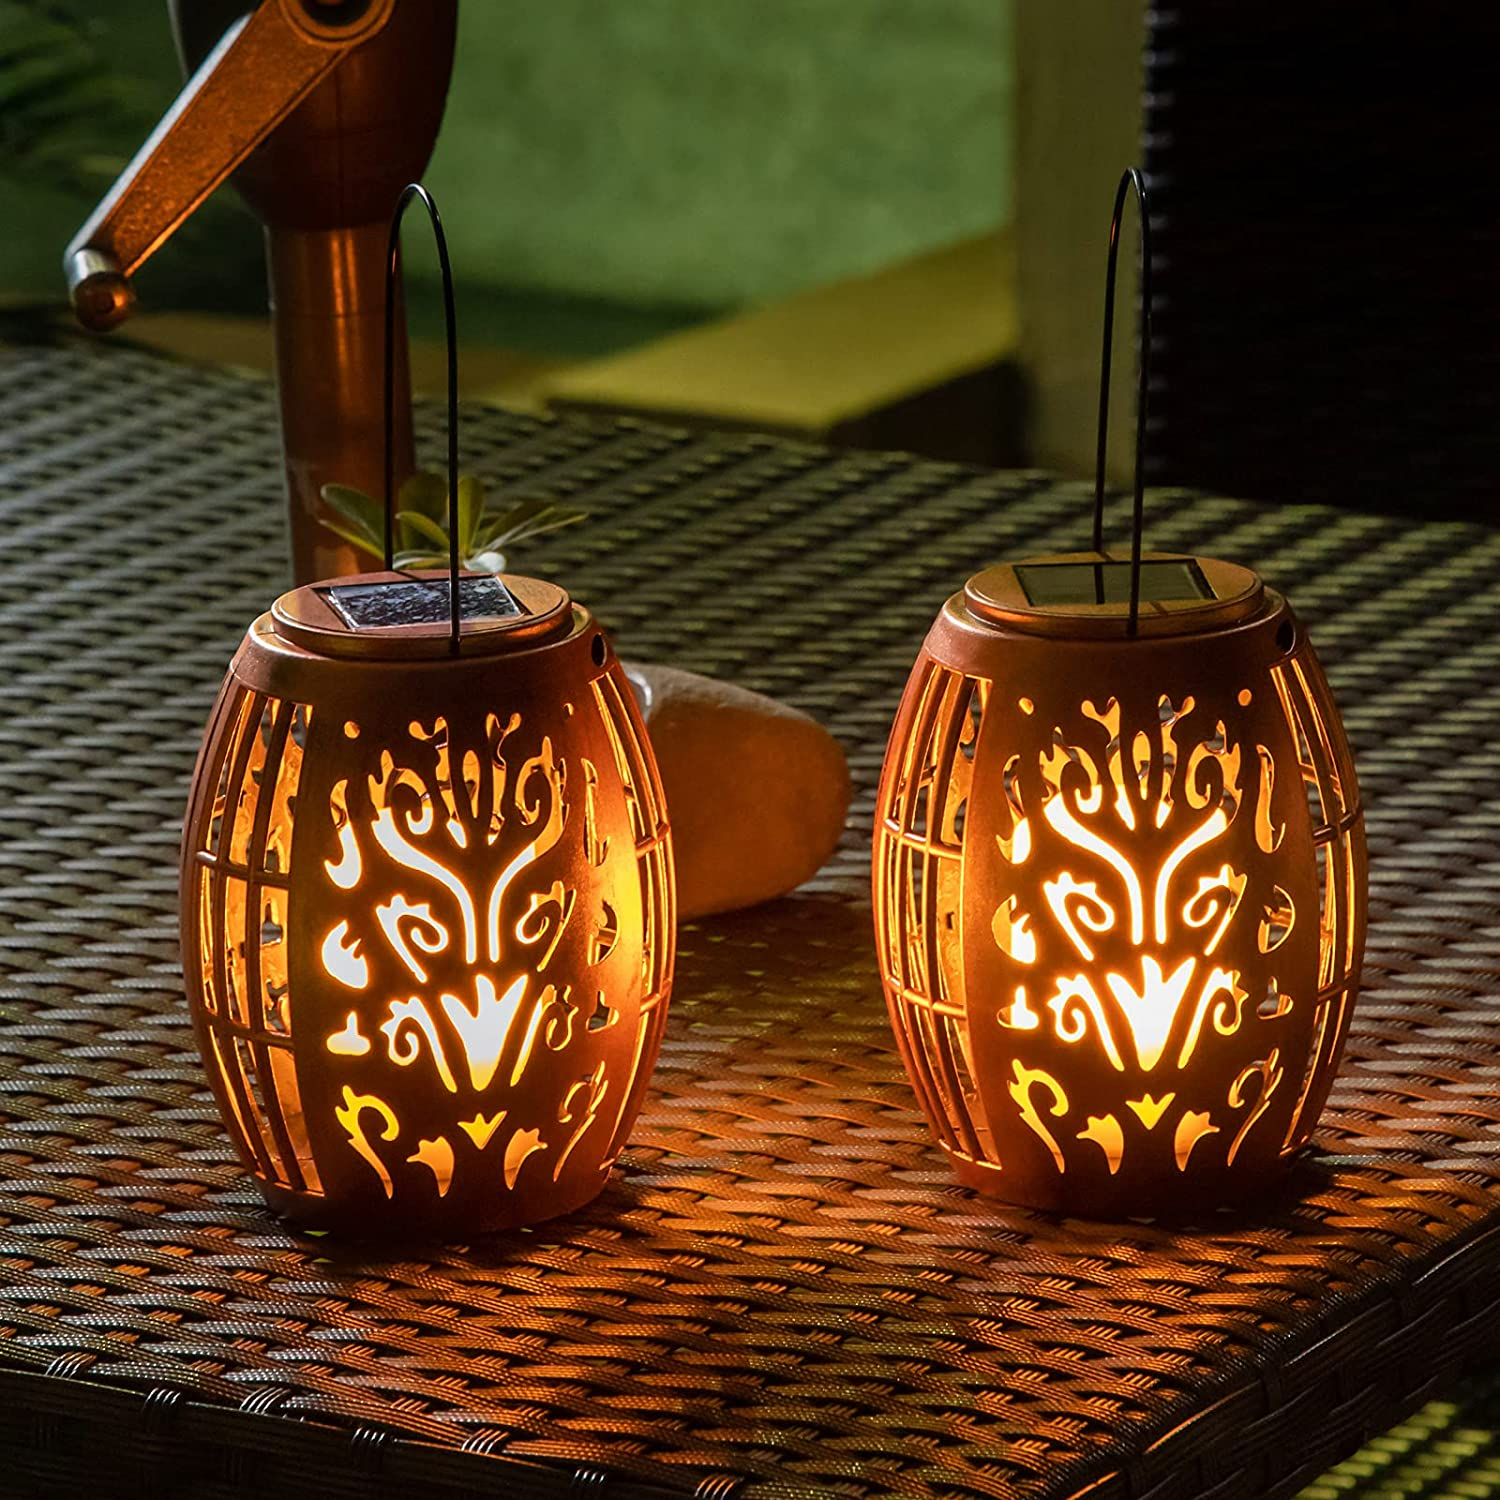 2Pack Solar Outdoor Lanterns Hanging LED Garden Lights Decorative Flickering Flameless Candle Table Lamps for Patio, Yard, Porch, Tree Decorations(Copper)